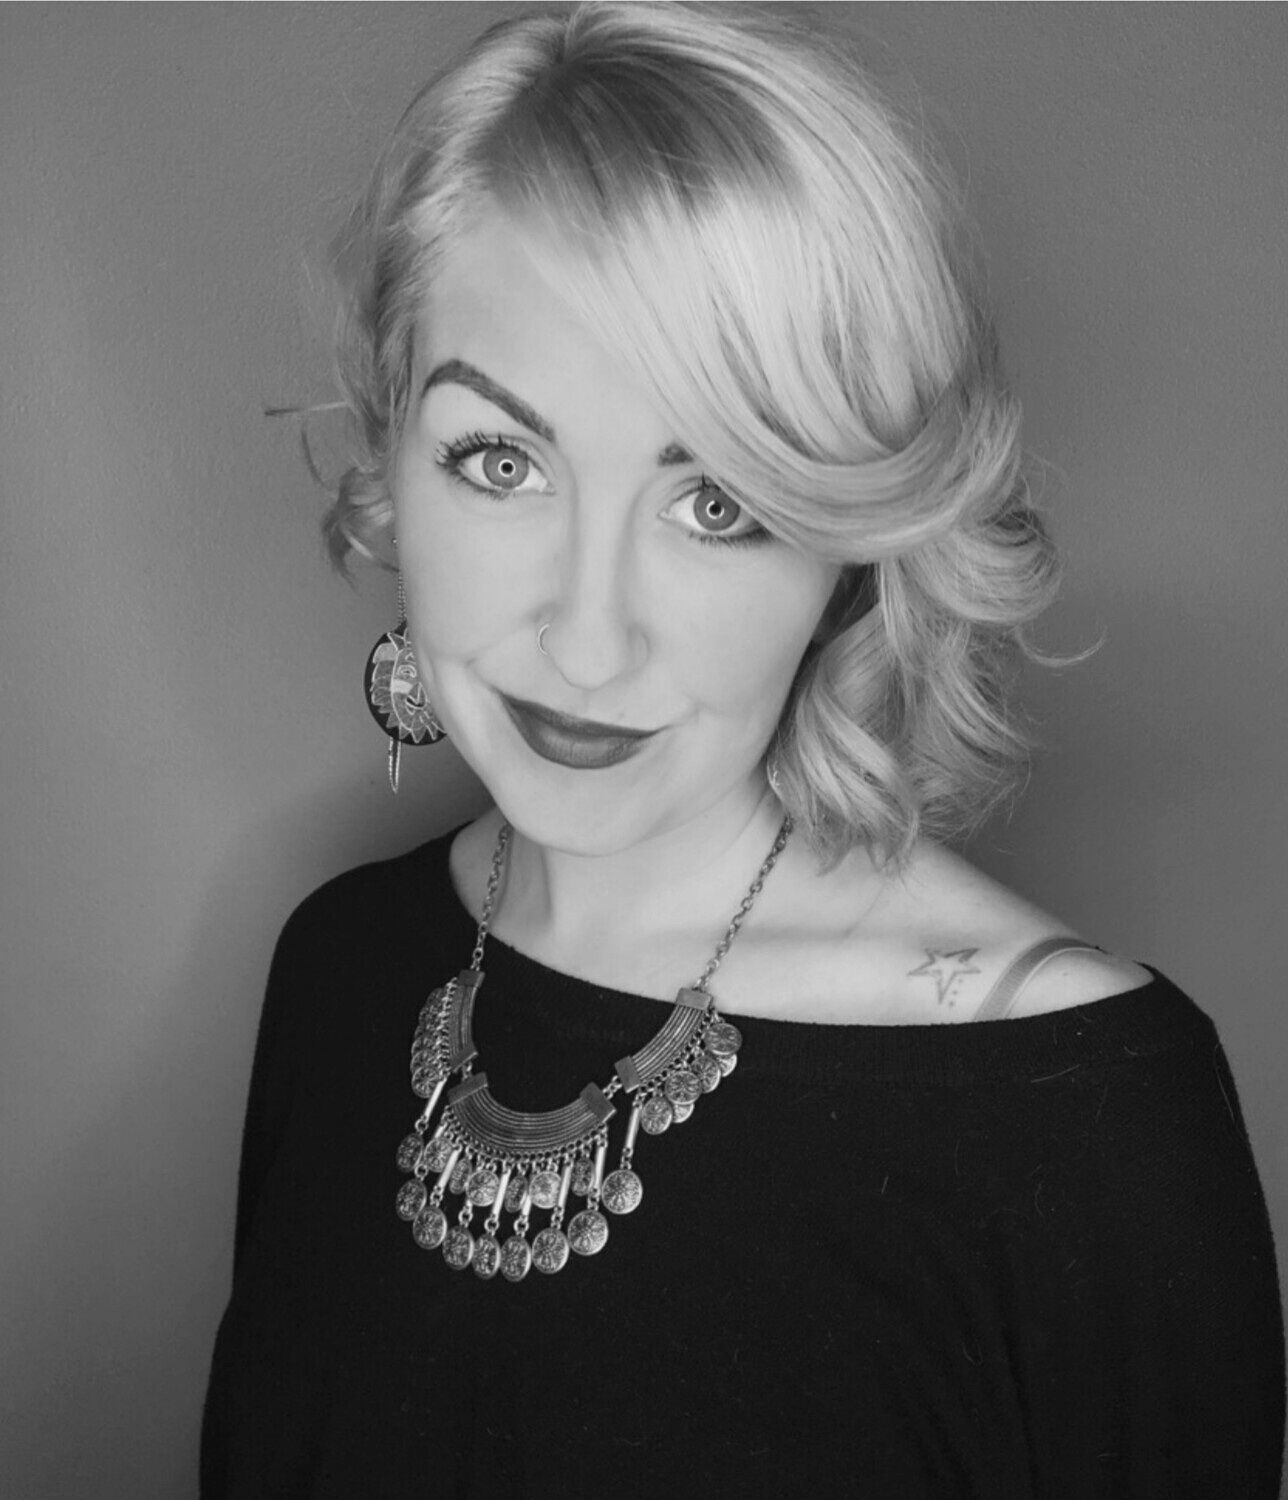 #Sundaystaffspotlight we are featuring our Esthetician and ...